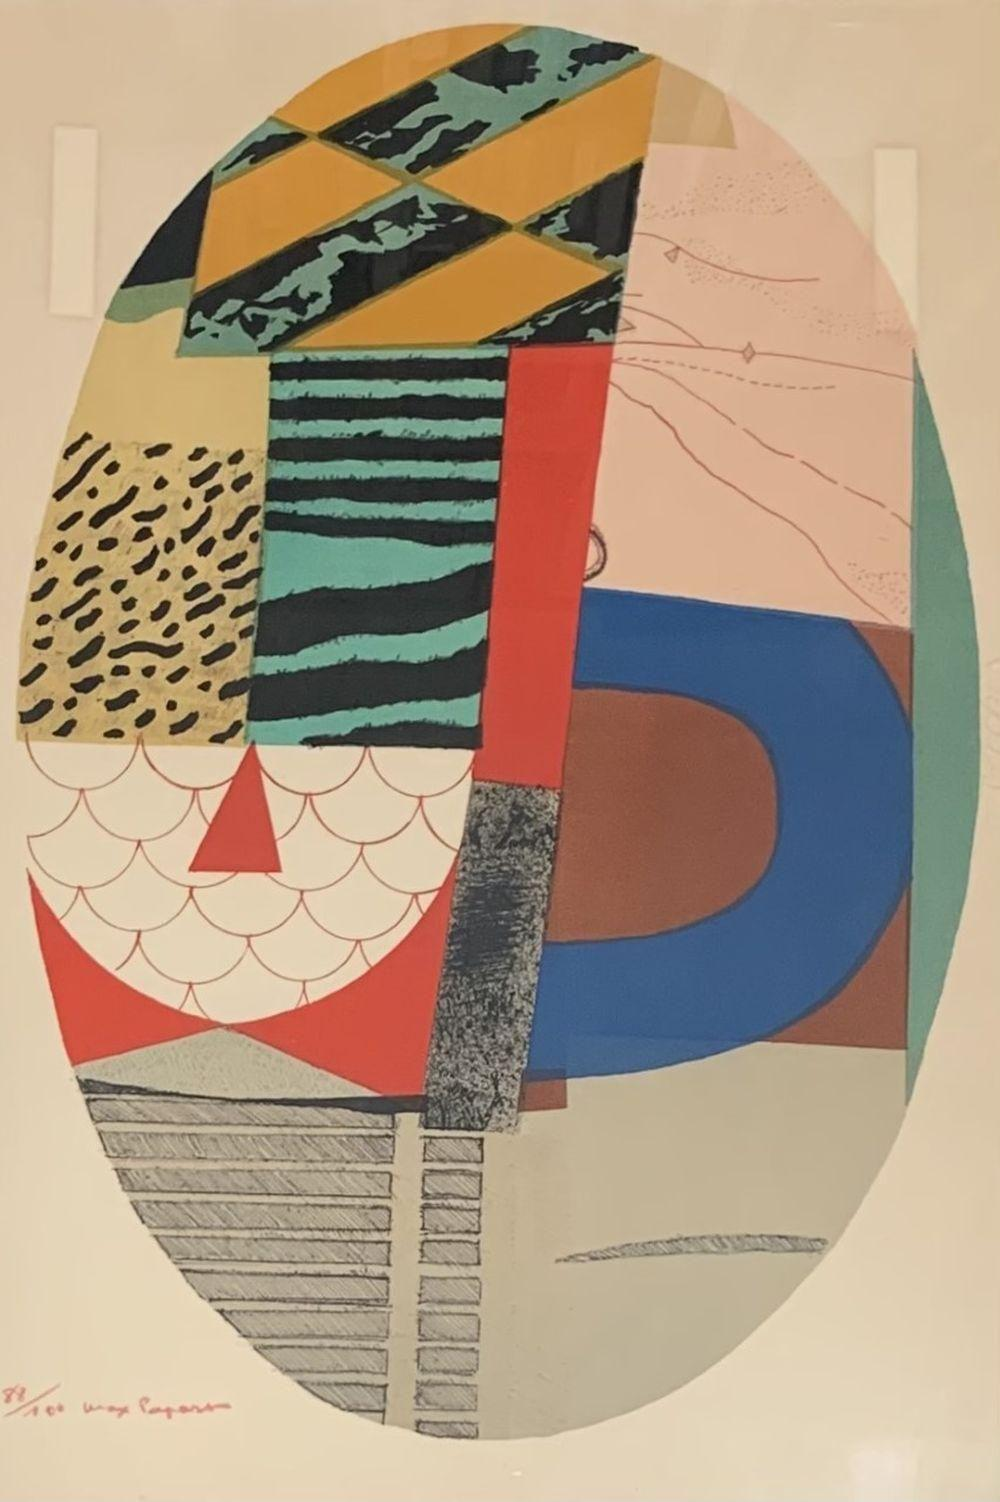 Max Papart - Composition ovale